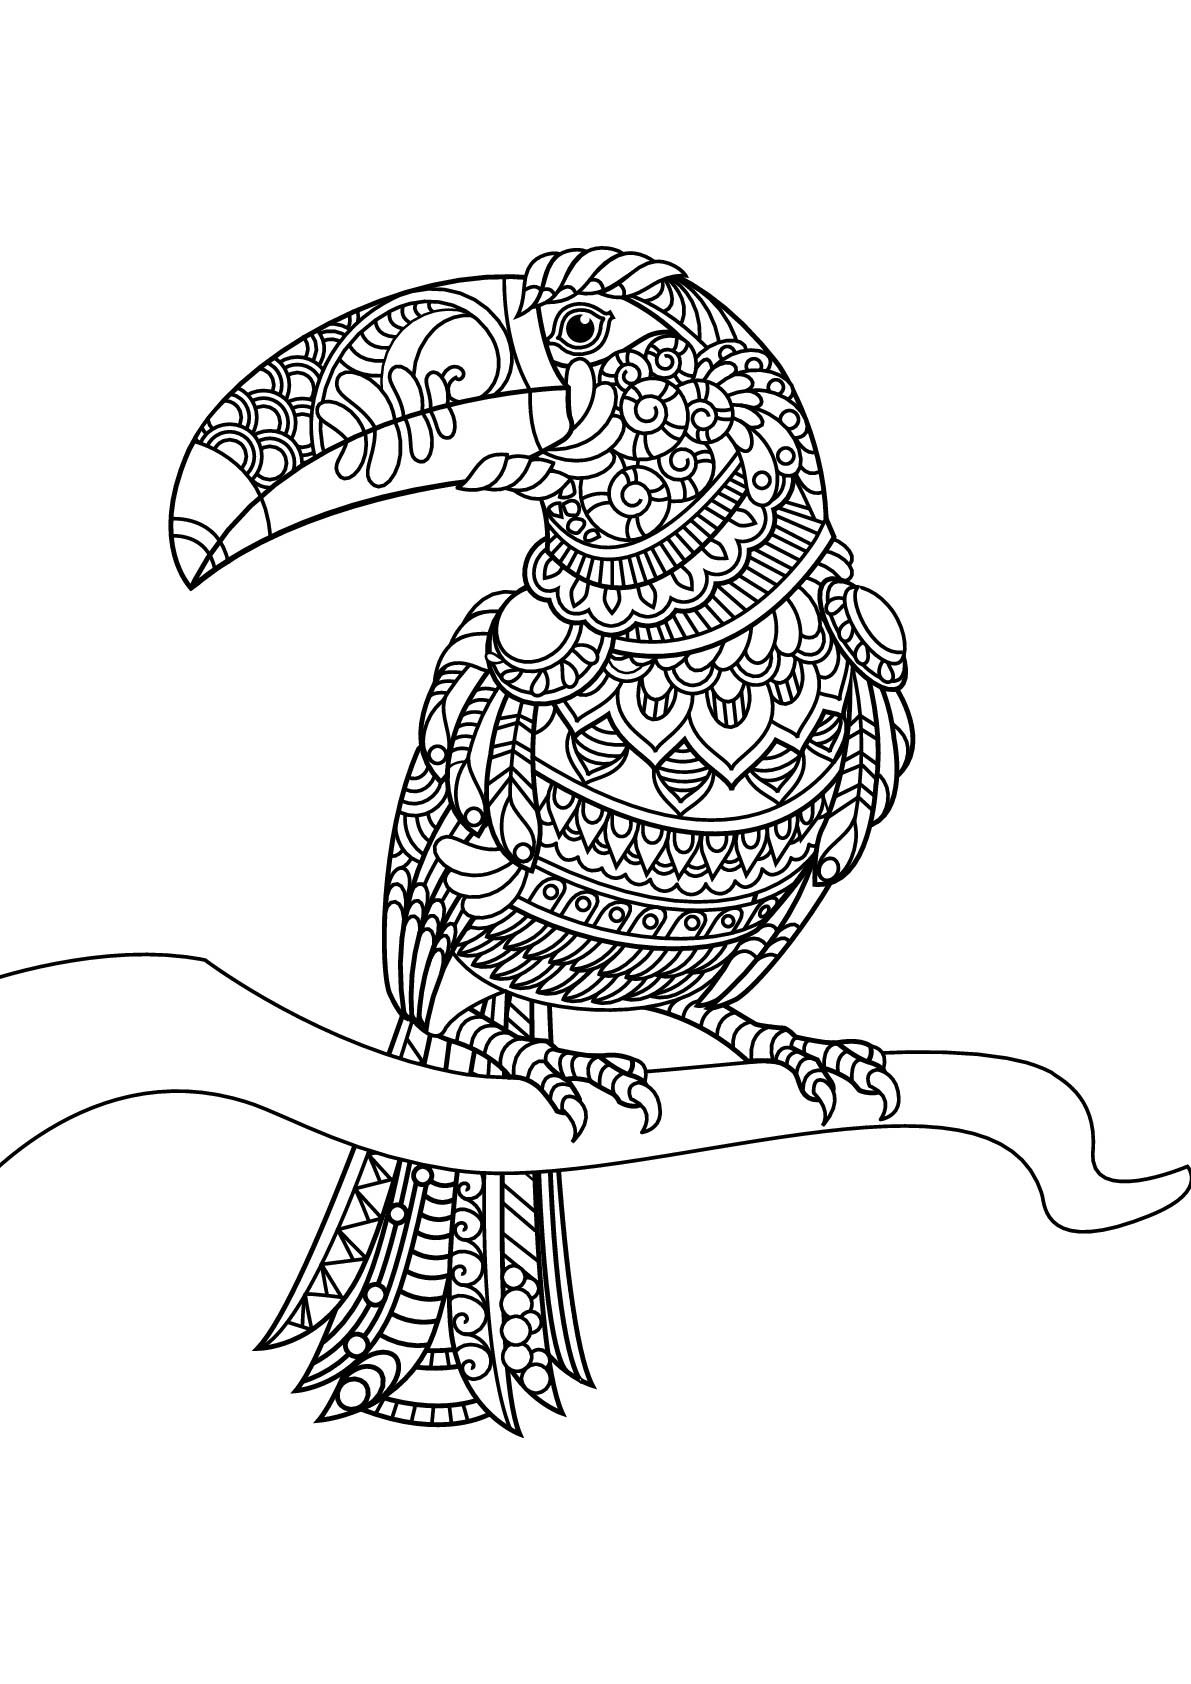 coloring pages for kids birds birds to print birds kids coloring pages coloring kids pages for birds